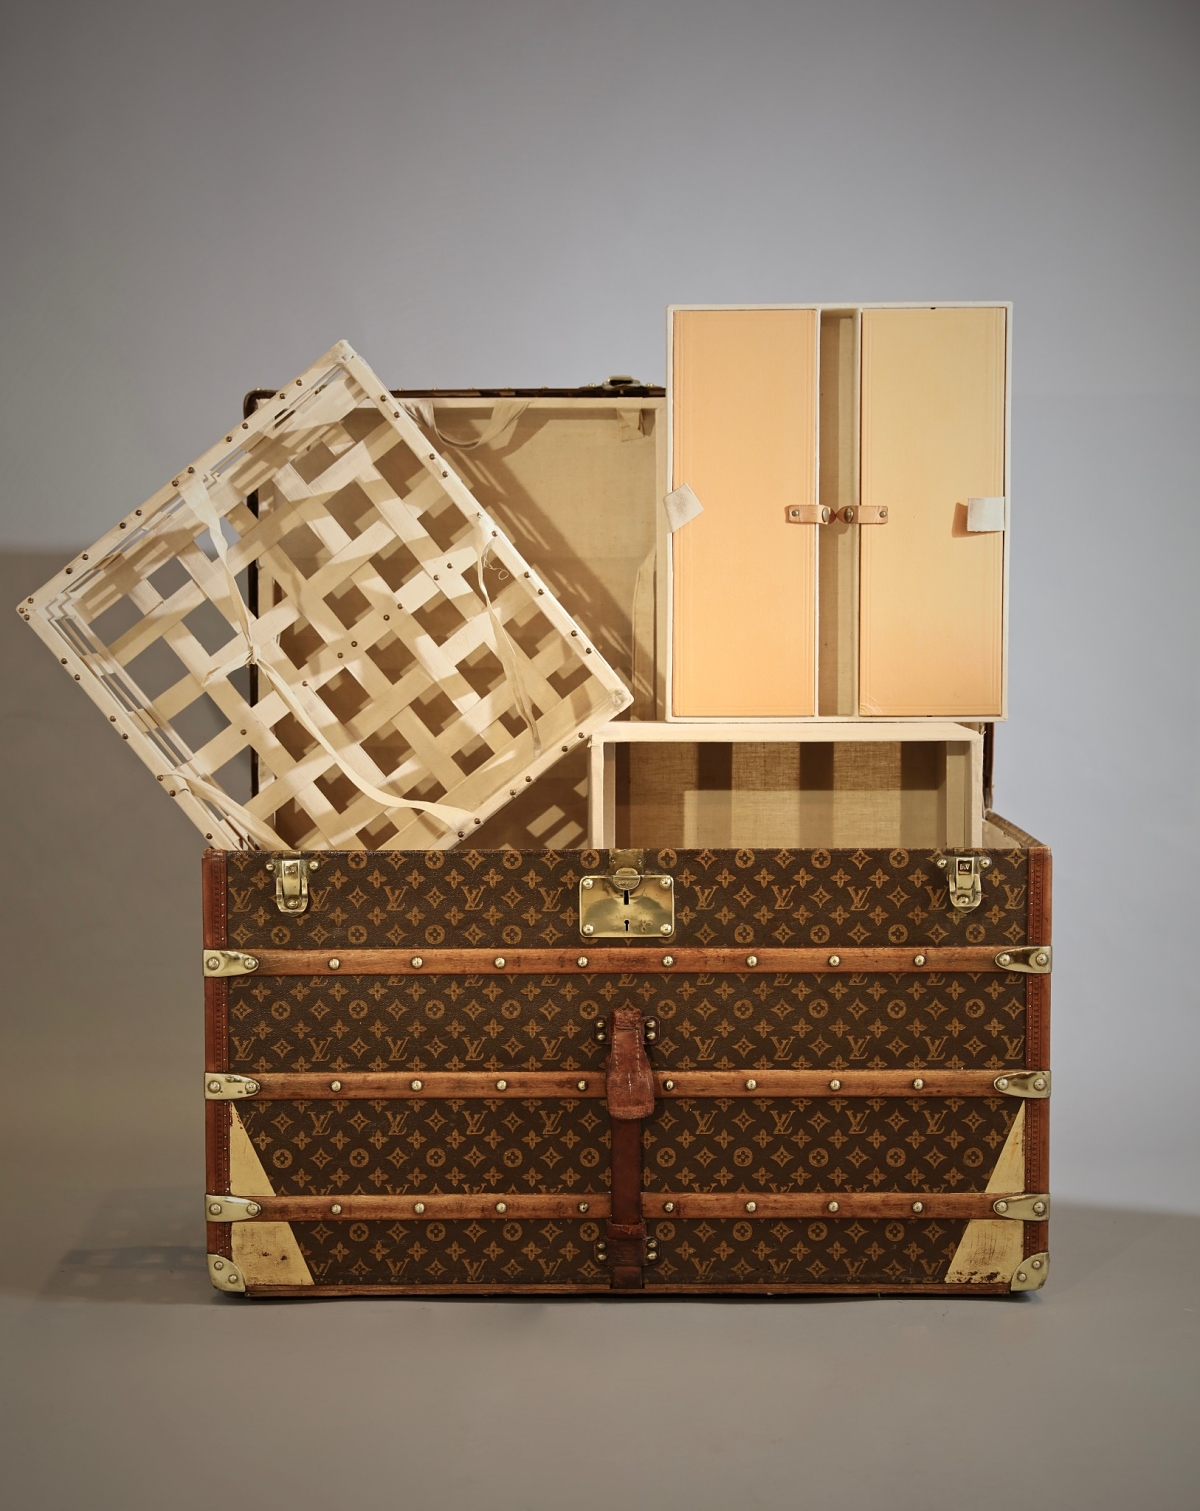 the-well-traveled-trunk-louis-vuitton-thumbnail-product-5658D